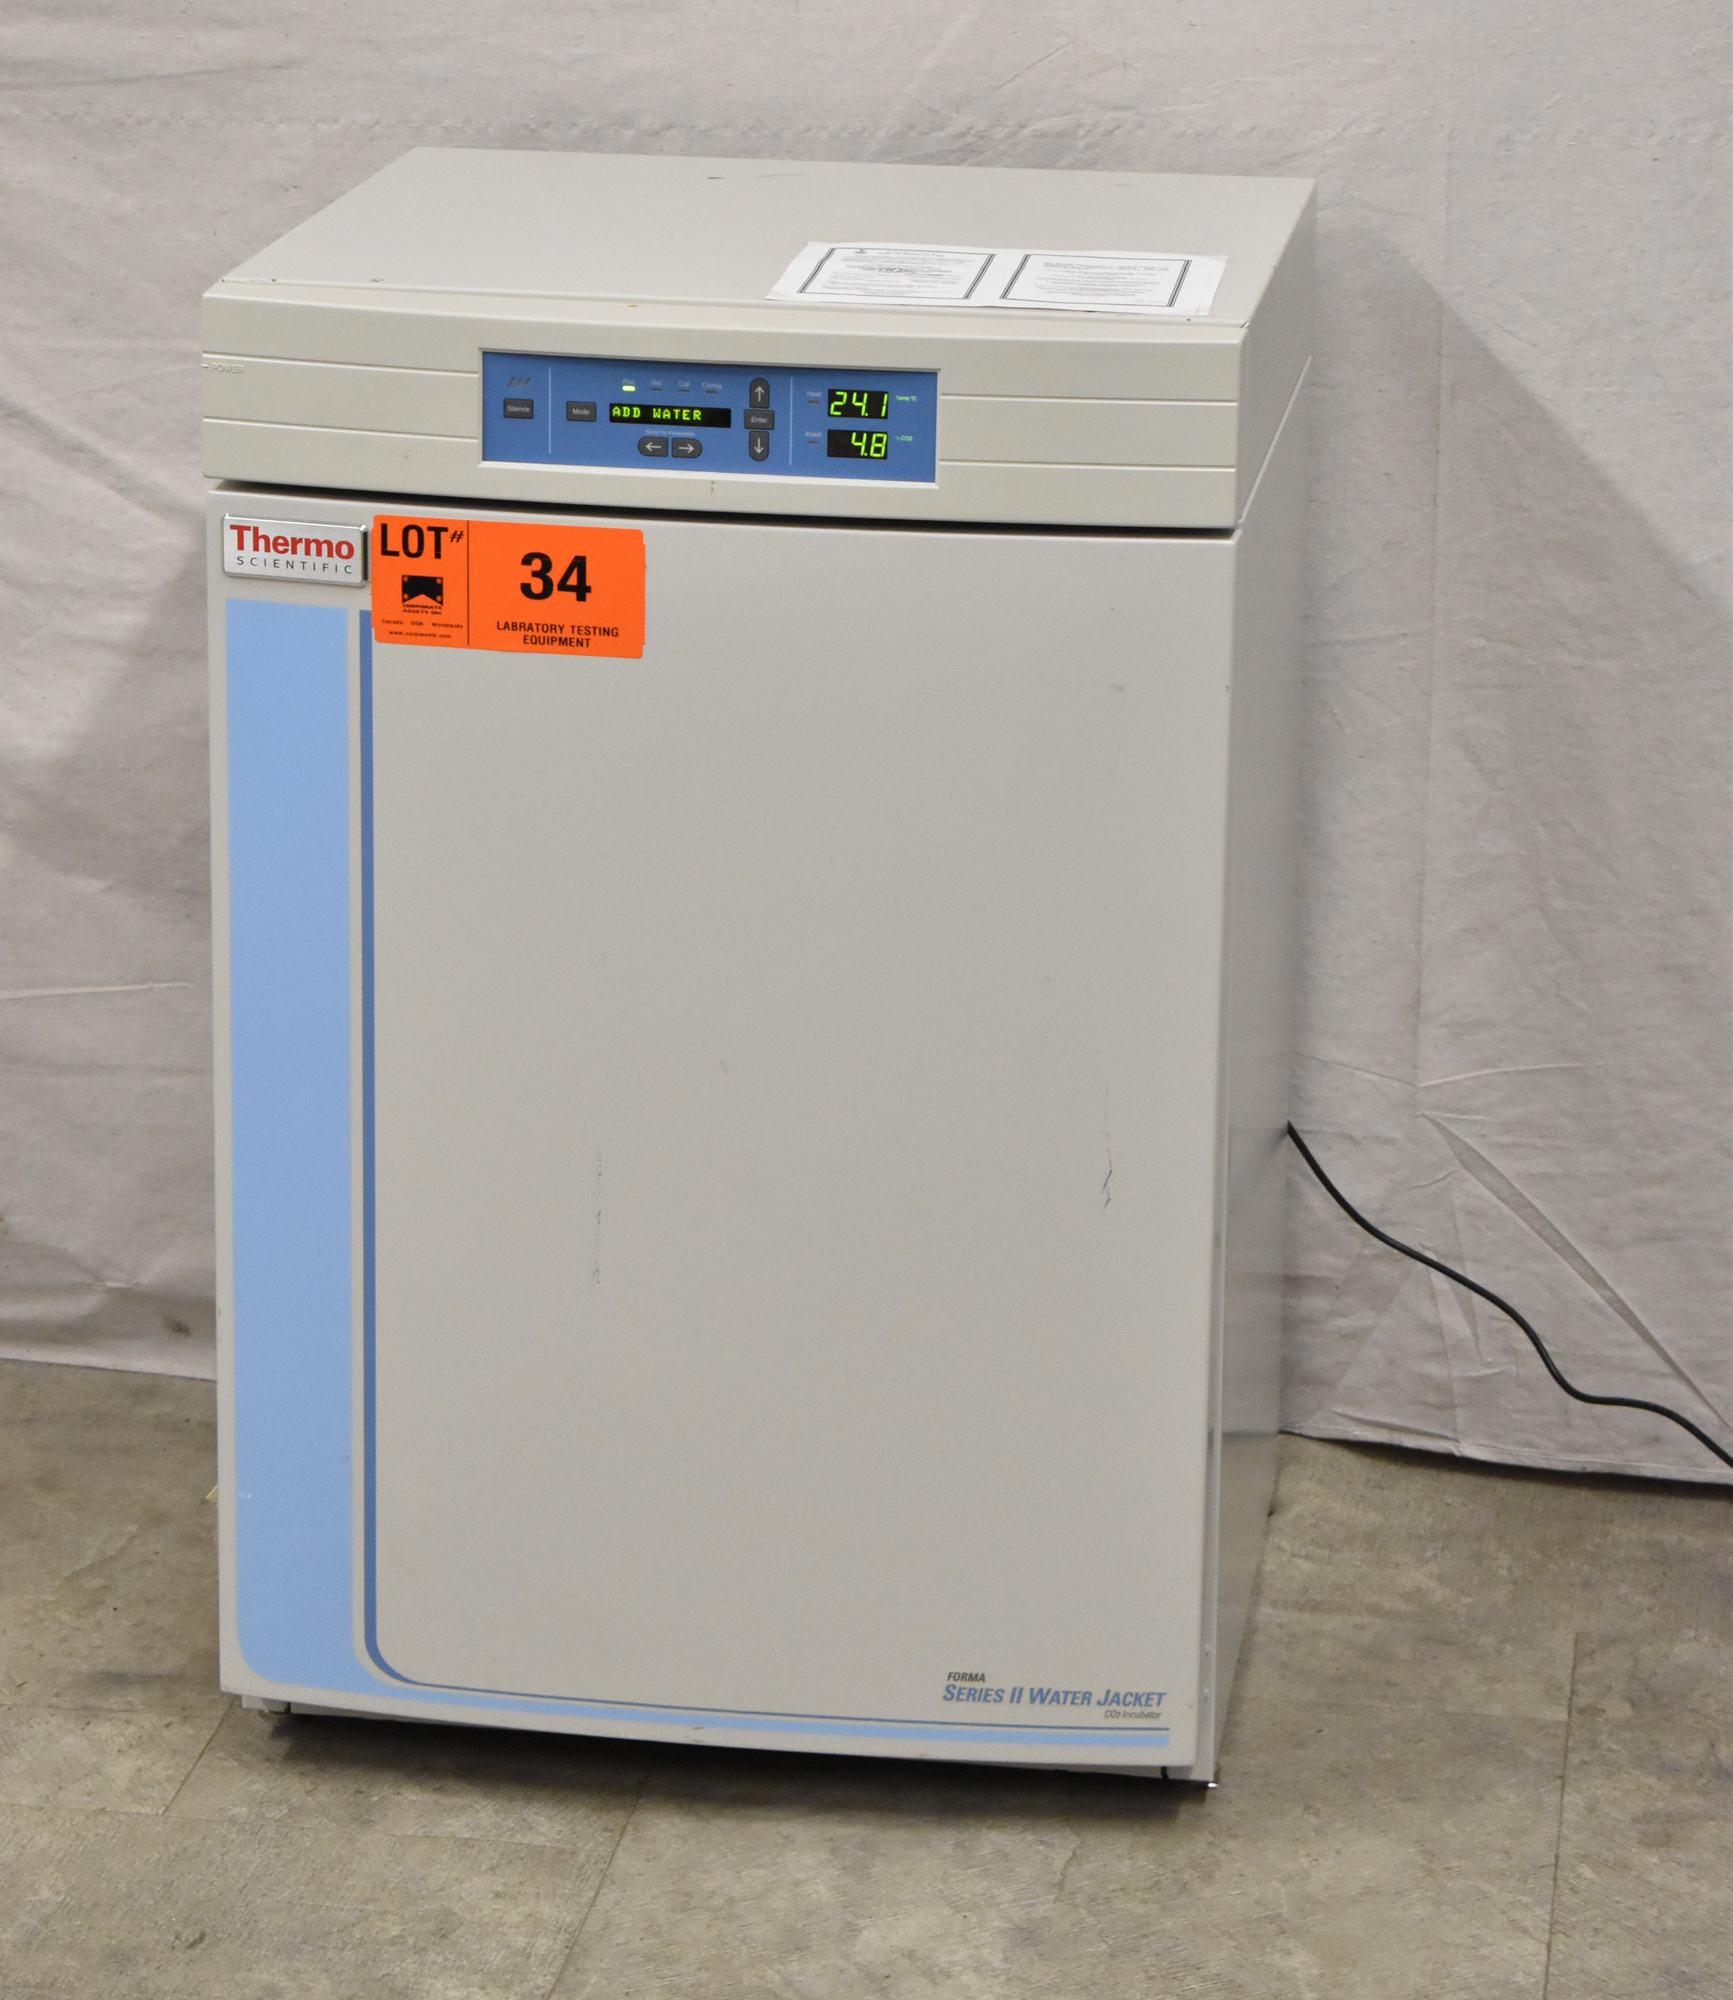 THERMO SCIENTIFIC 3130 FORMA SERIES II WATER JACKET CO2 INCUBATOR WITH DIGITAL MICROPROCESSOR